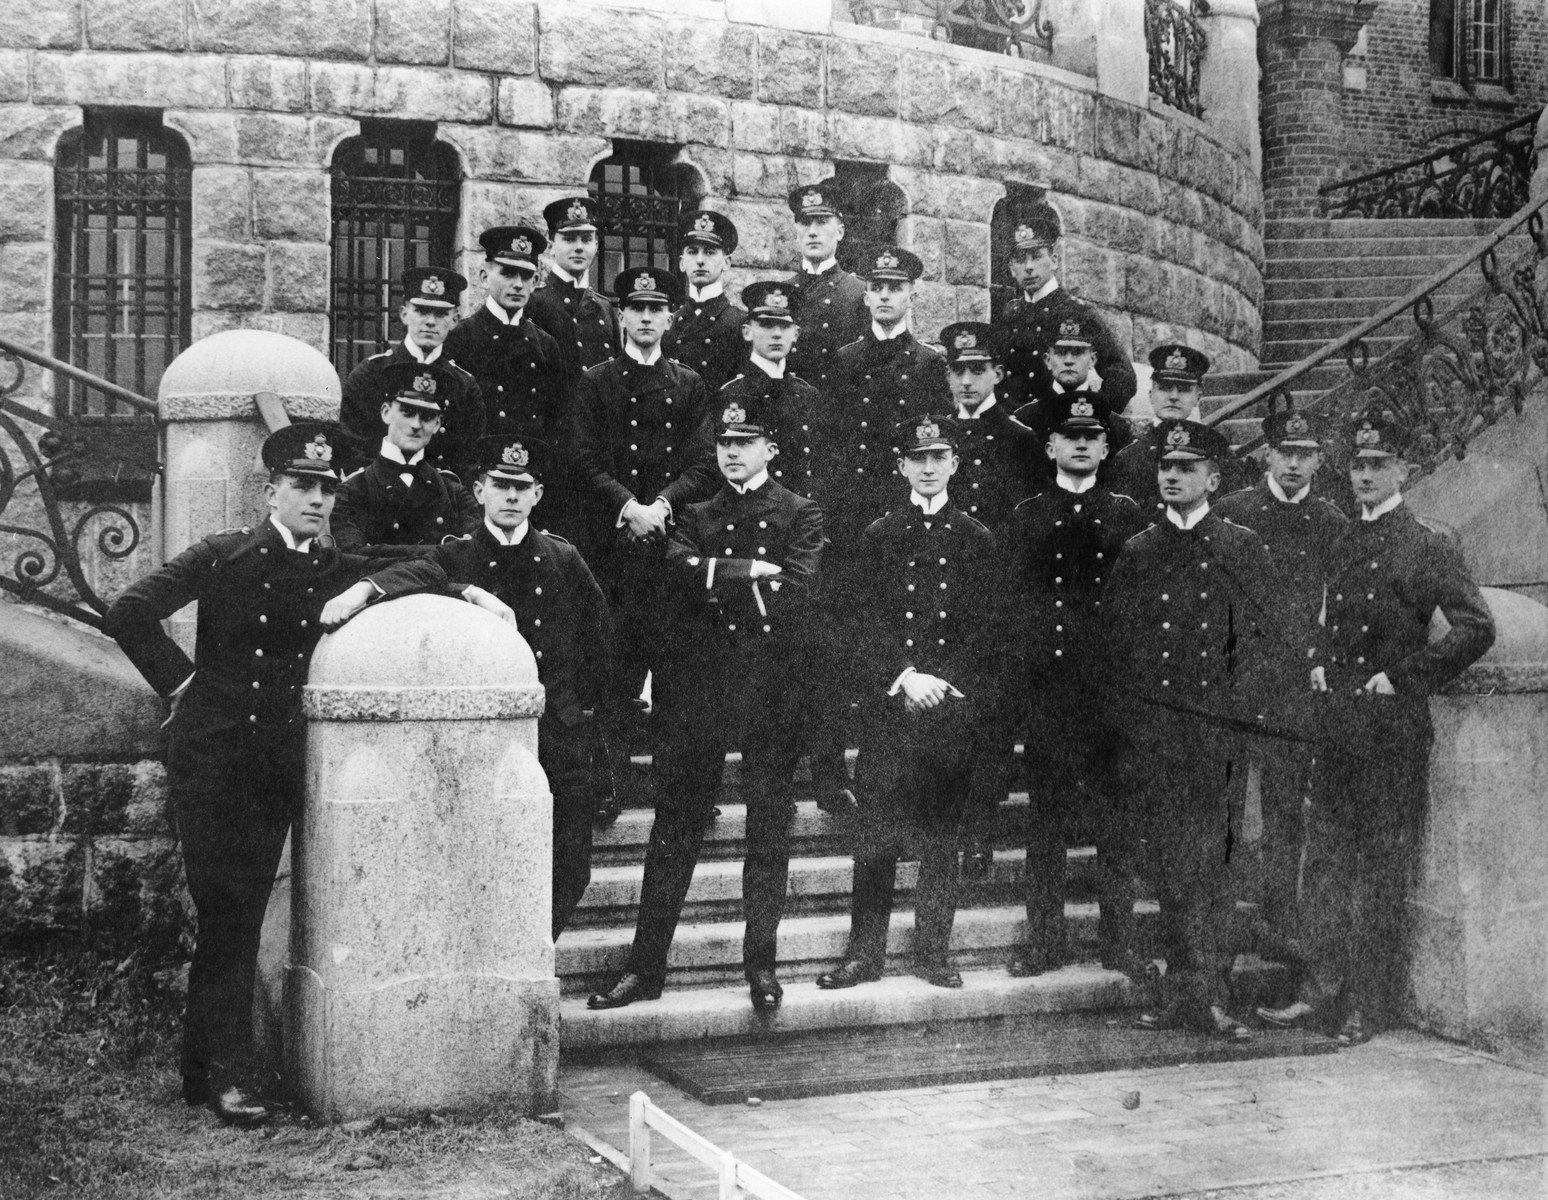 Group portrait of German cadets in the Flensburg-Muerwik Naval Academy.  Among those pictured is Martin Niemoeller (second row from the front, second from the right).